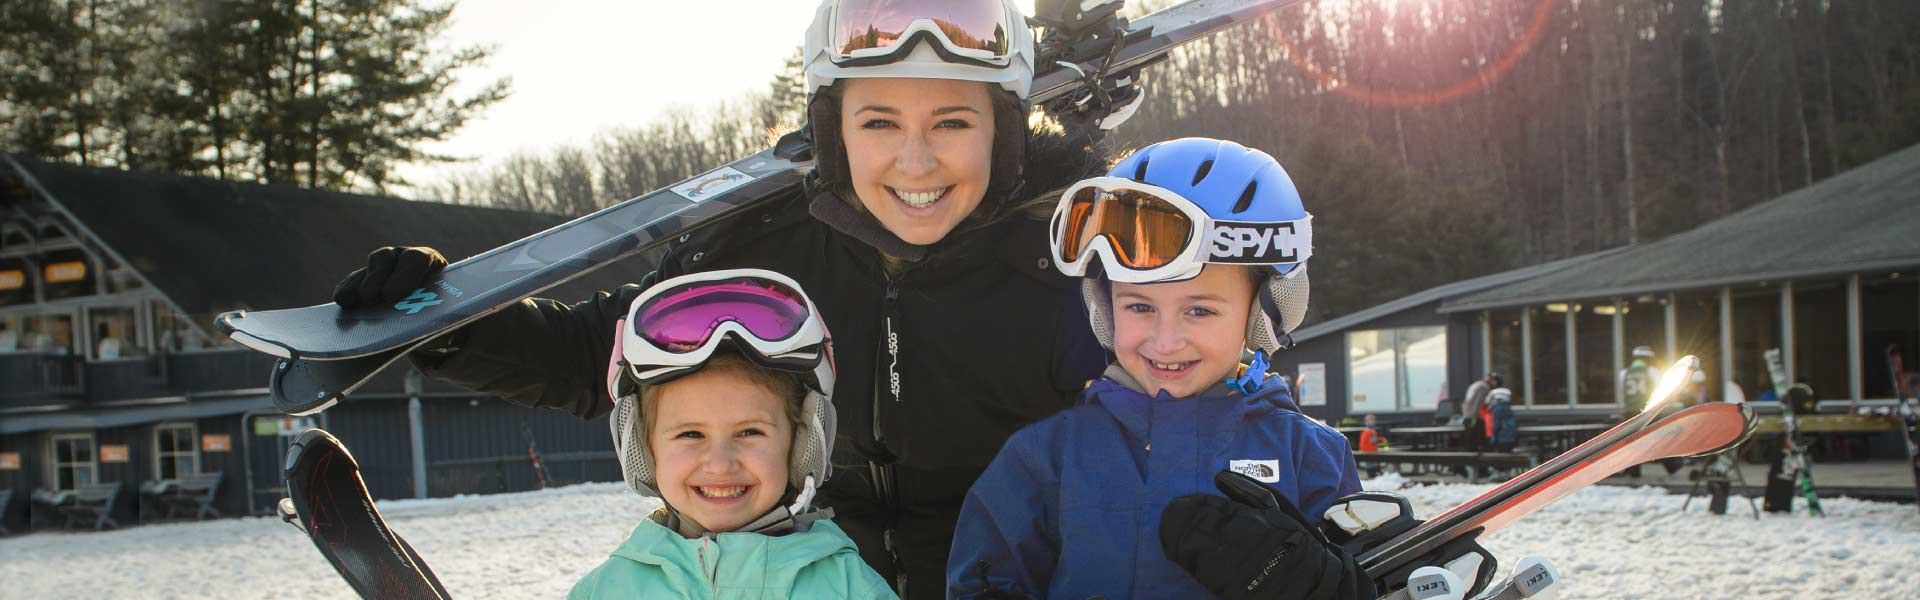 Mom and kids with skis